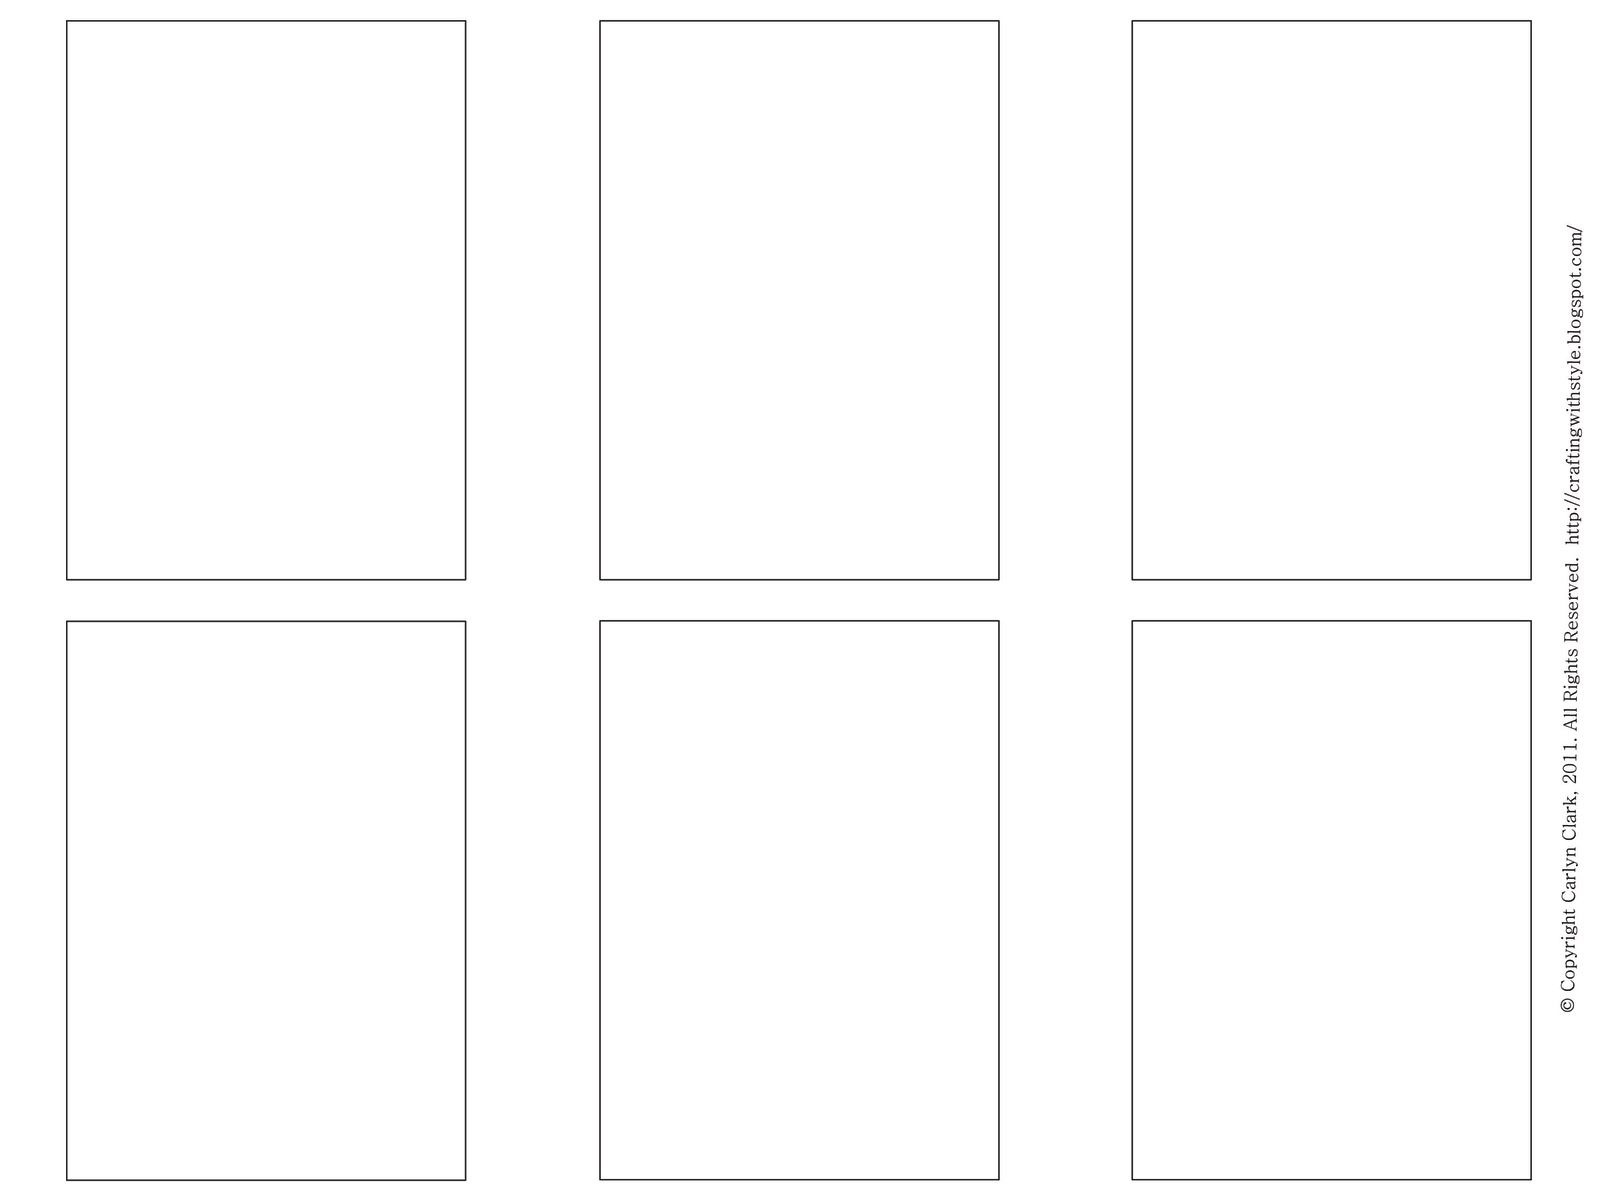 Free Blank Business Card Templates | Free Atc Templates And Artwork - Free Printable Blank Business Cards